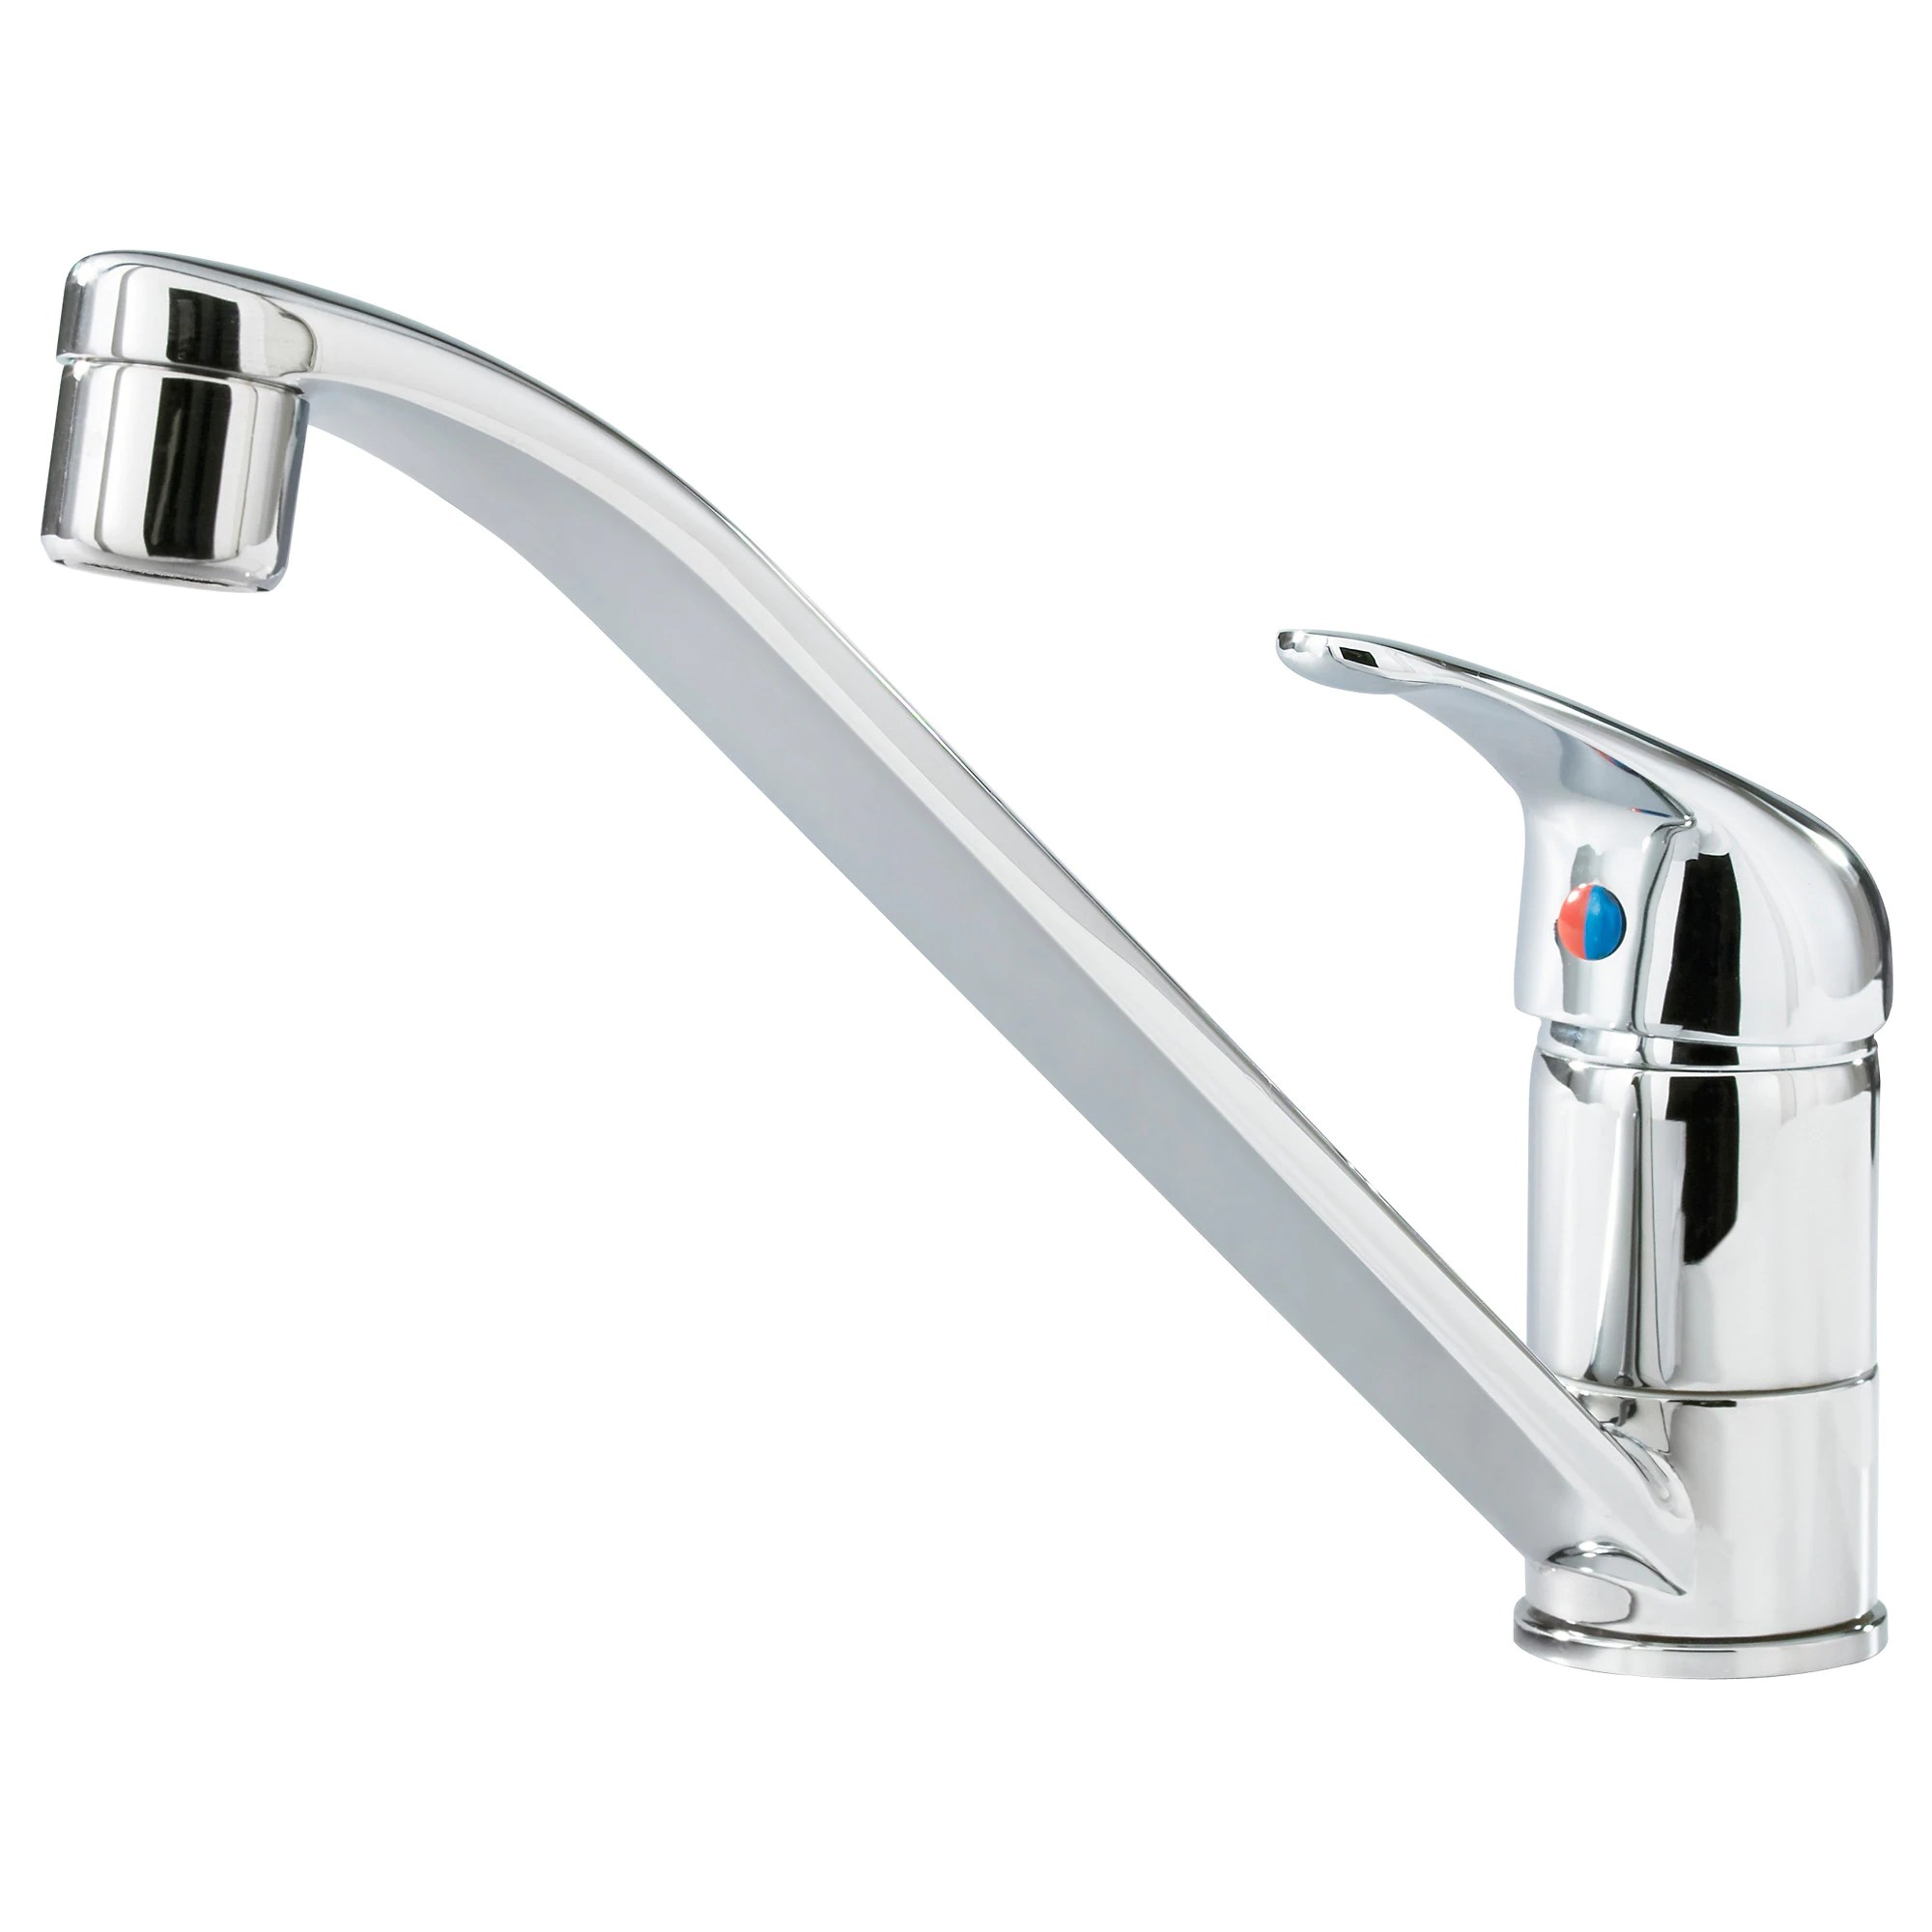 kitchen sinks and faucets LAGAN single lever kitchen faucet chrome plated Height 6 1 4 Height